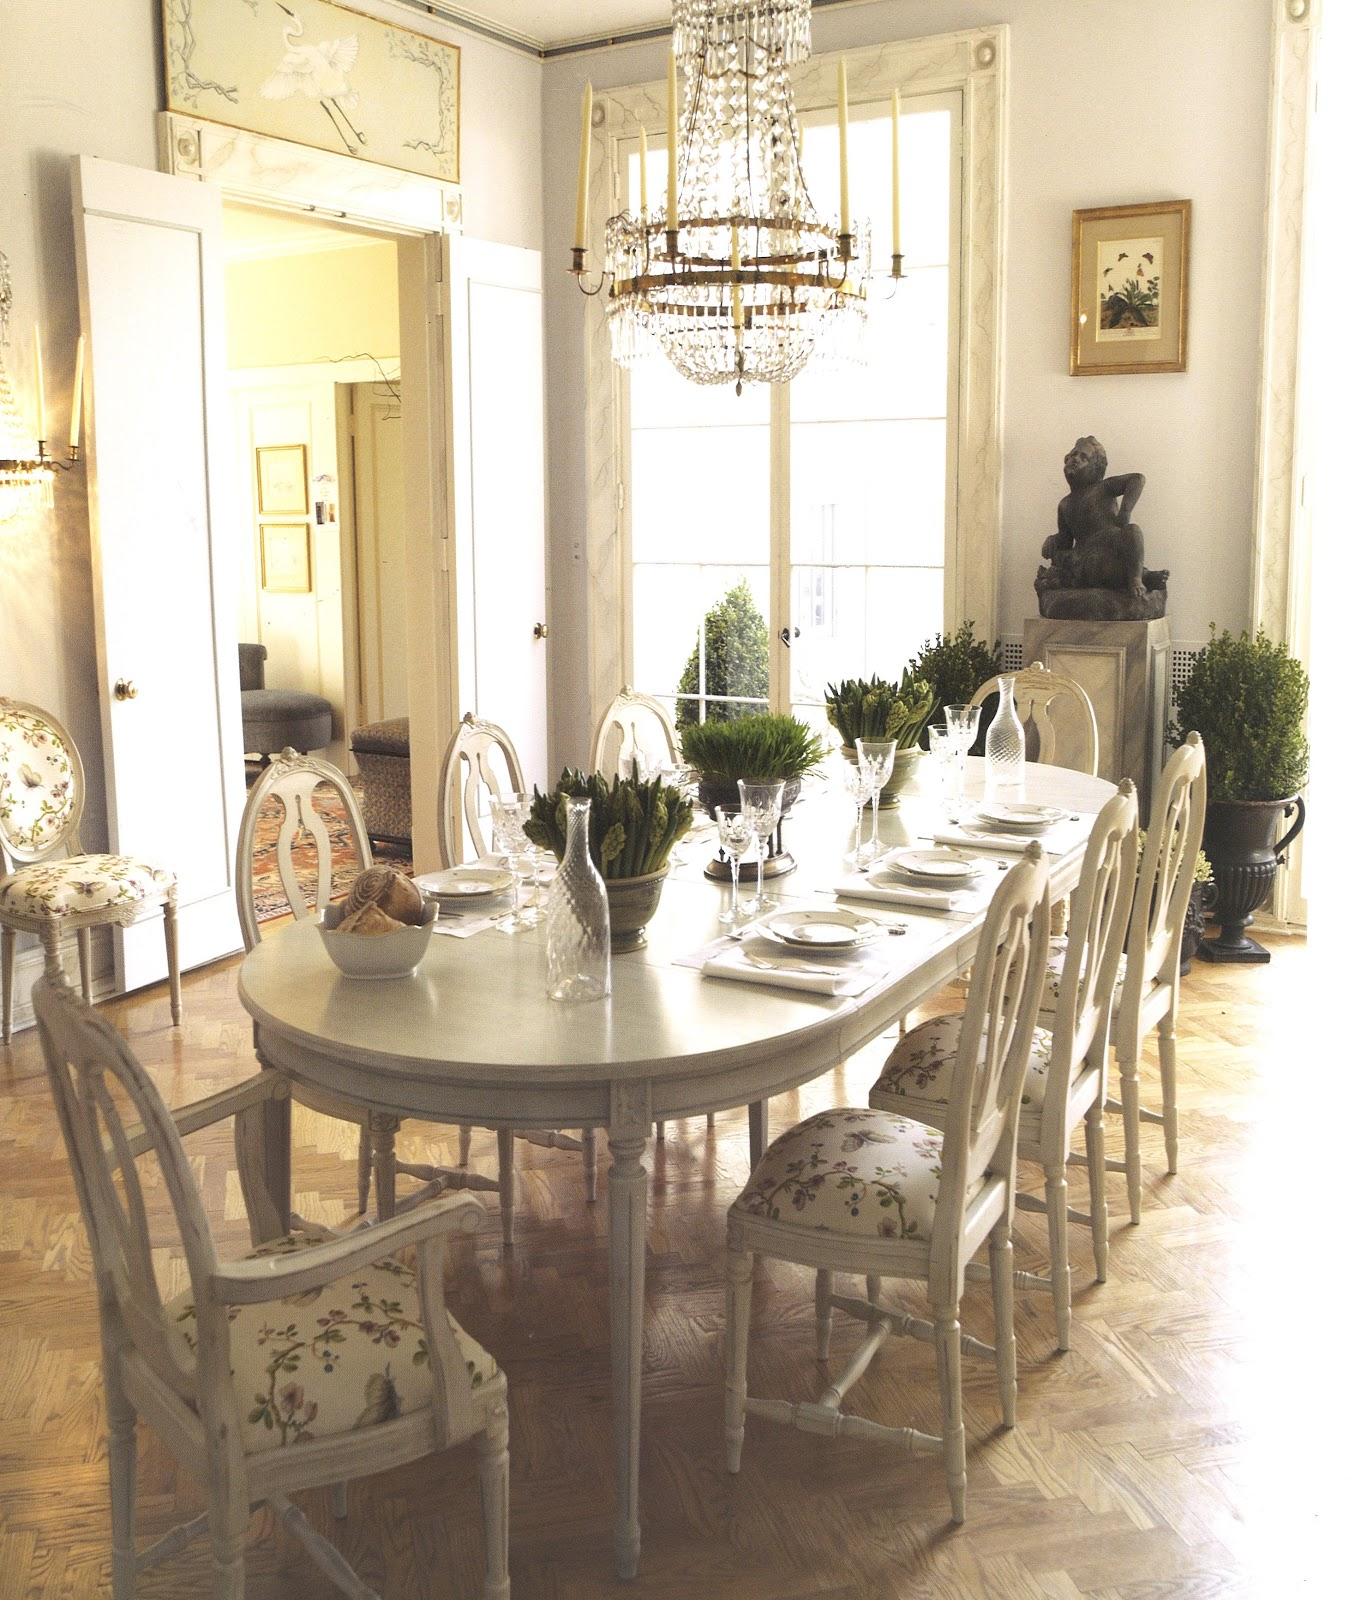 The Dining Table Comes From My Favorite Source For Reproduction Gustavian Furniture Country Swedish Painted Cupboard Was Inherited It Belonged To